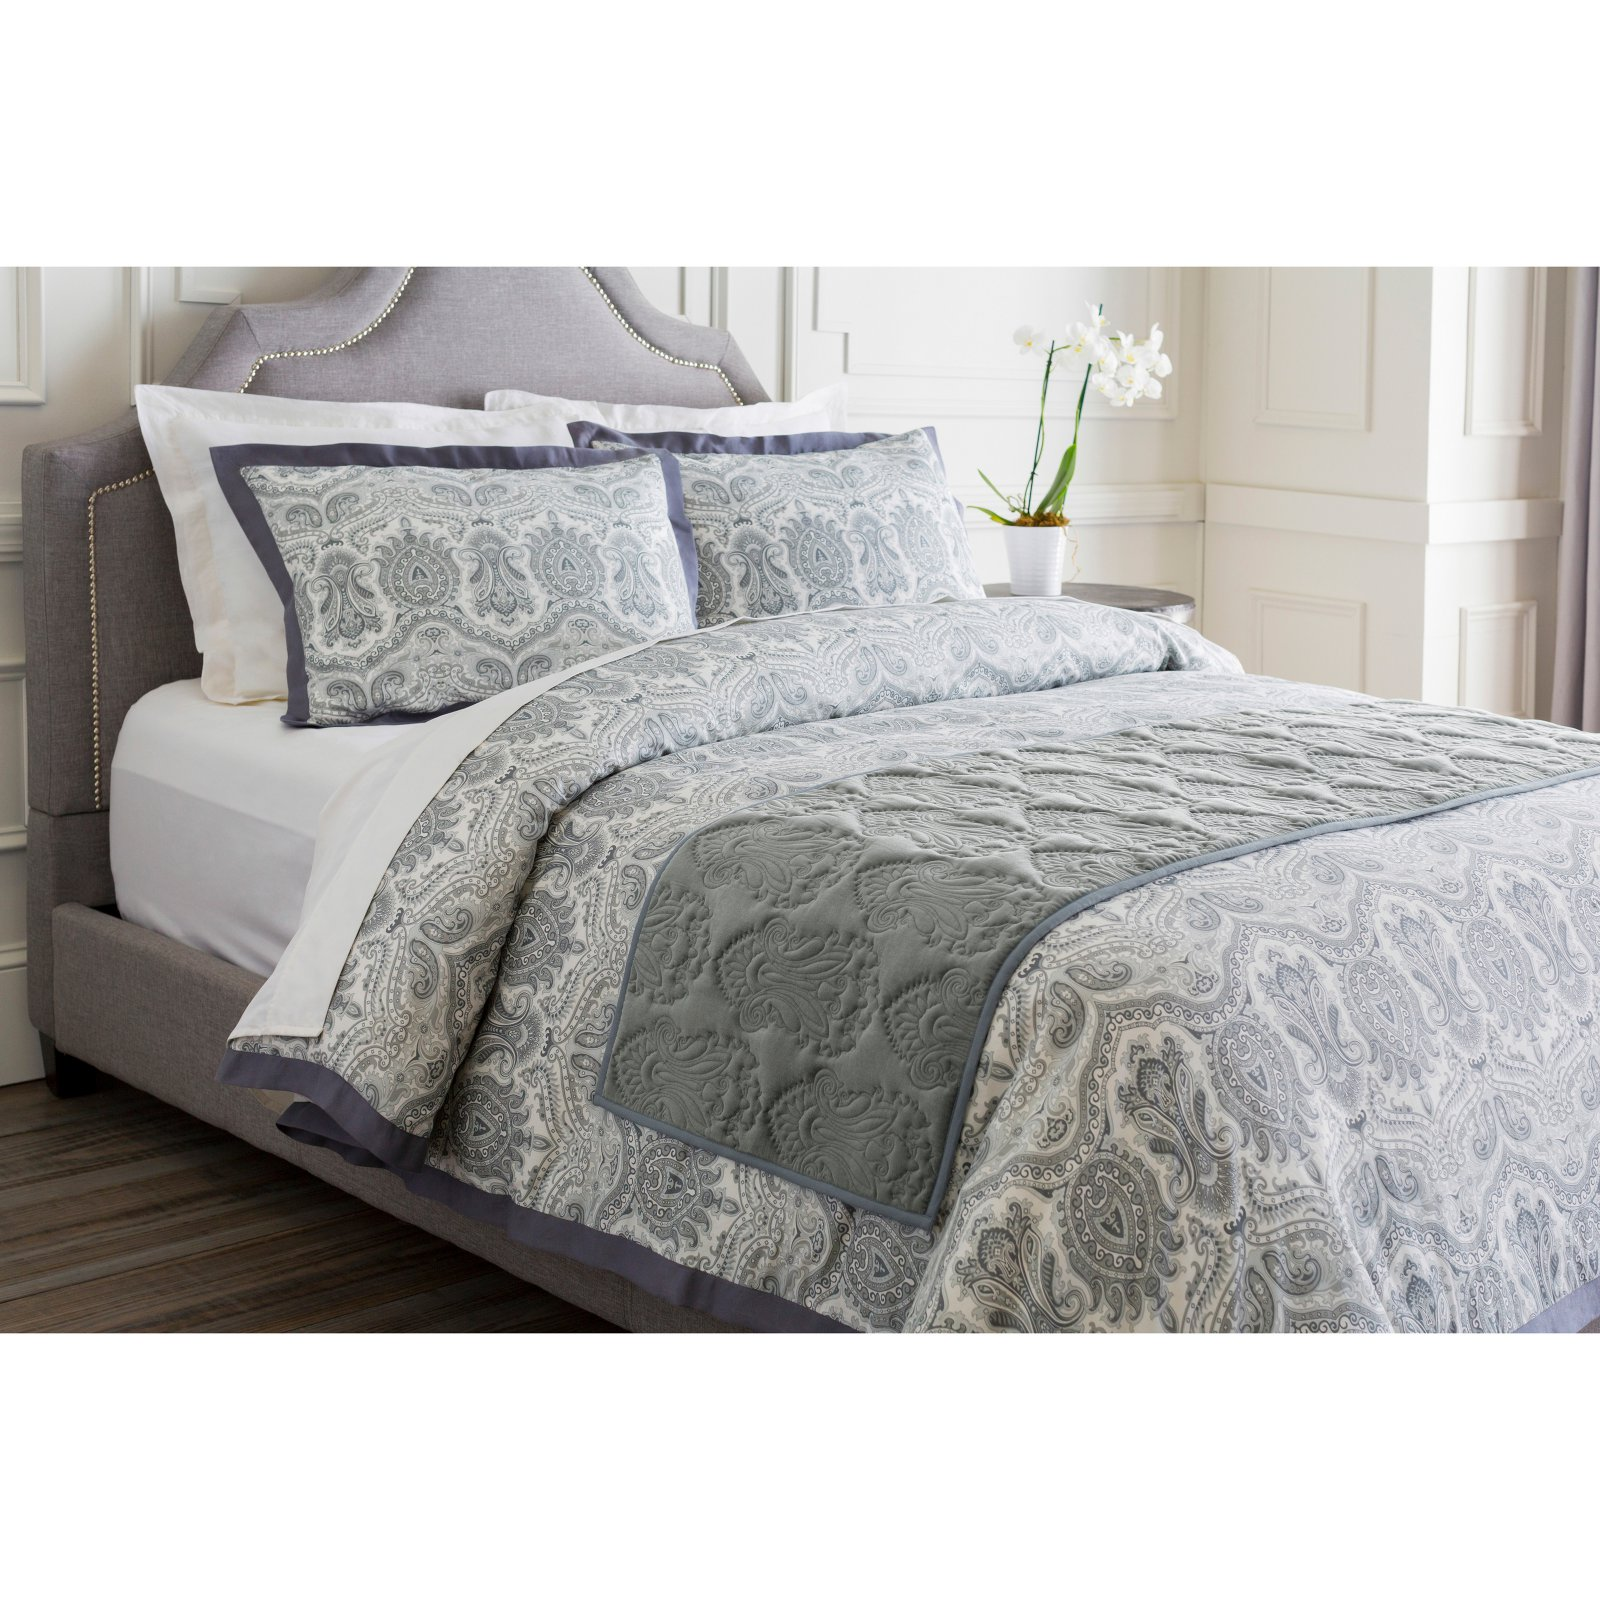 Vienna Bed Runner by Surya